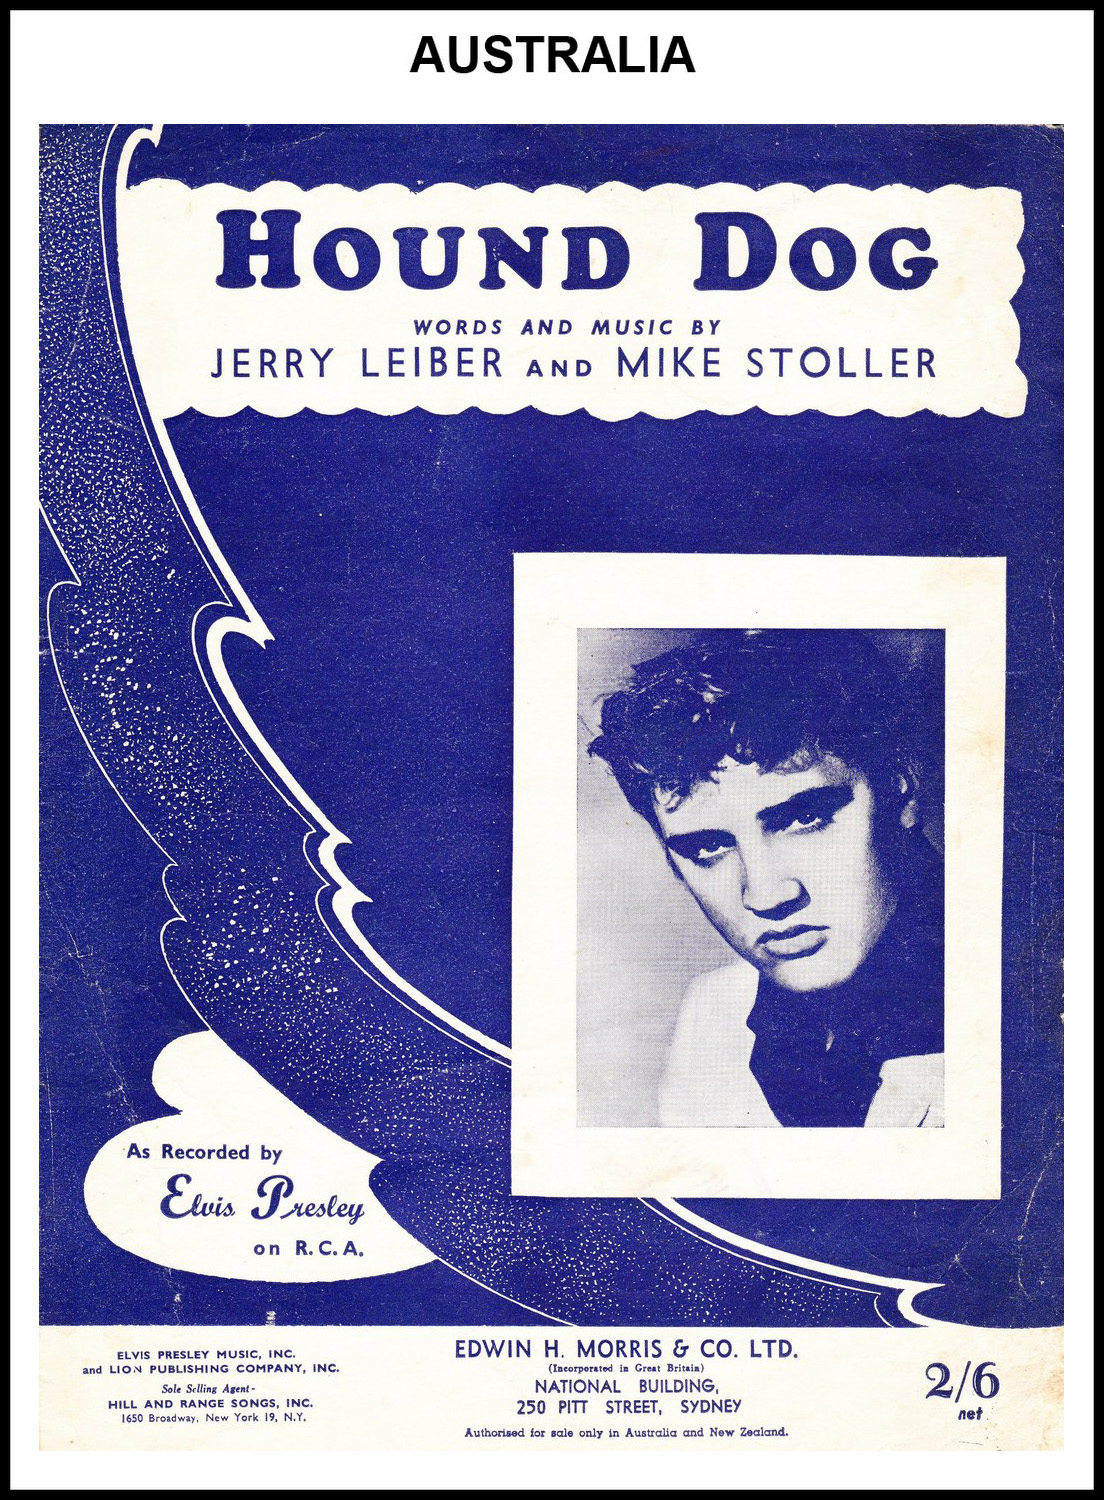 1956 - Hound Dog (Australia) (CHRIS GILES COLLECTION)